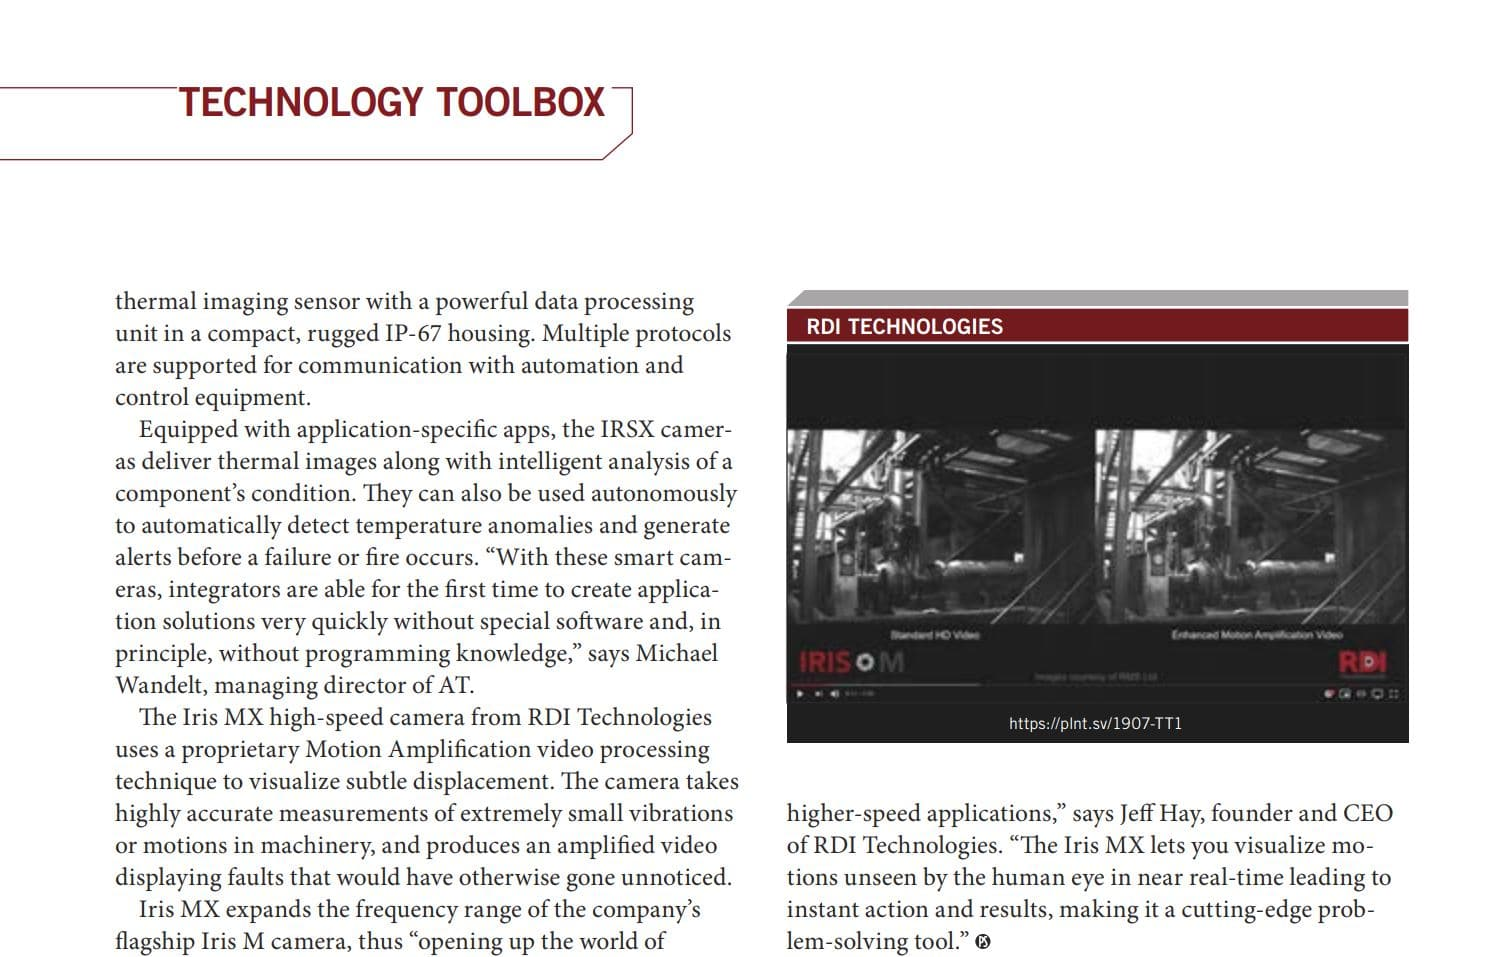 Technology Toolbox Image